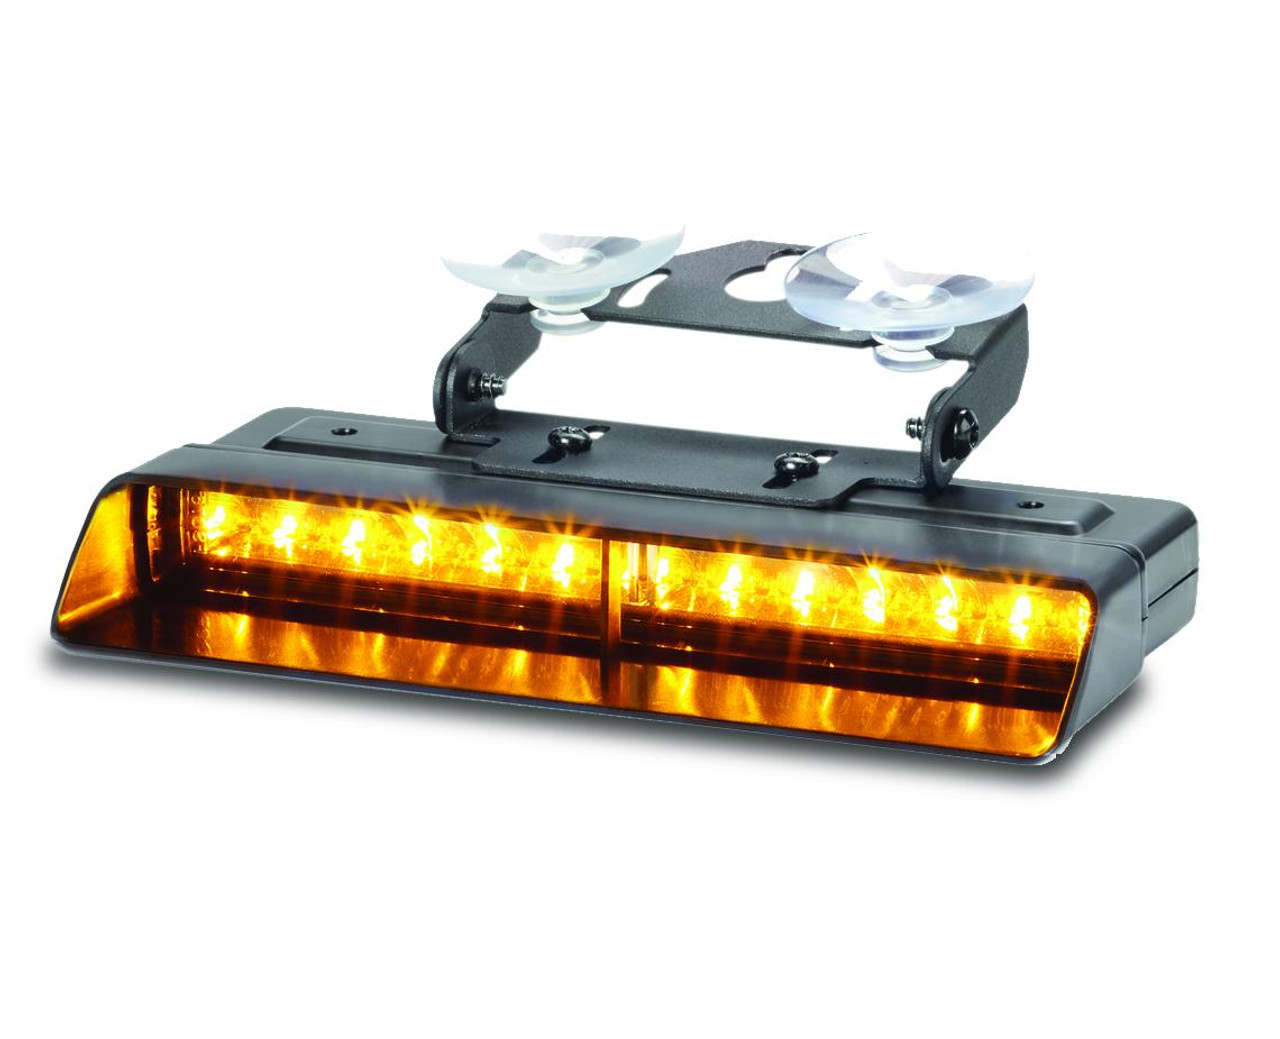 Federal Signal XStream™ Dual Interior Dash Deck Mount Warning LED Light, 3 colors per head, removable shroud